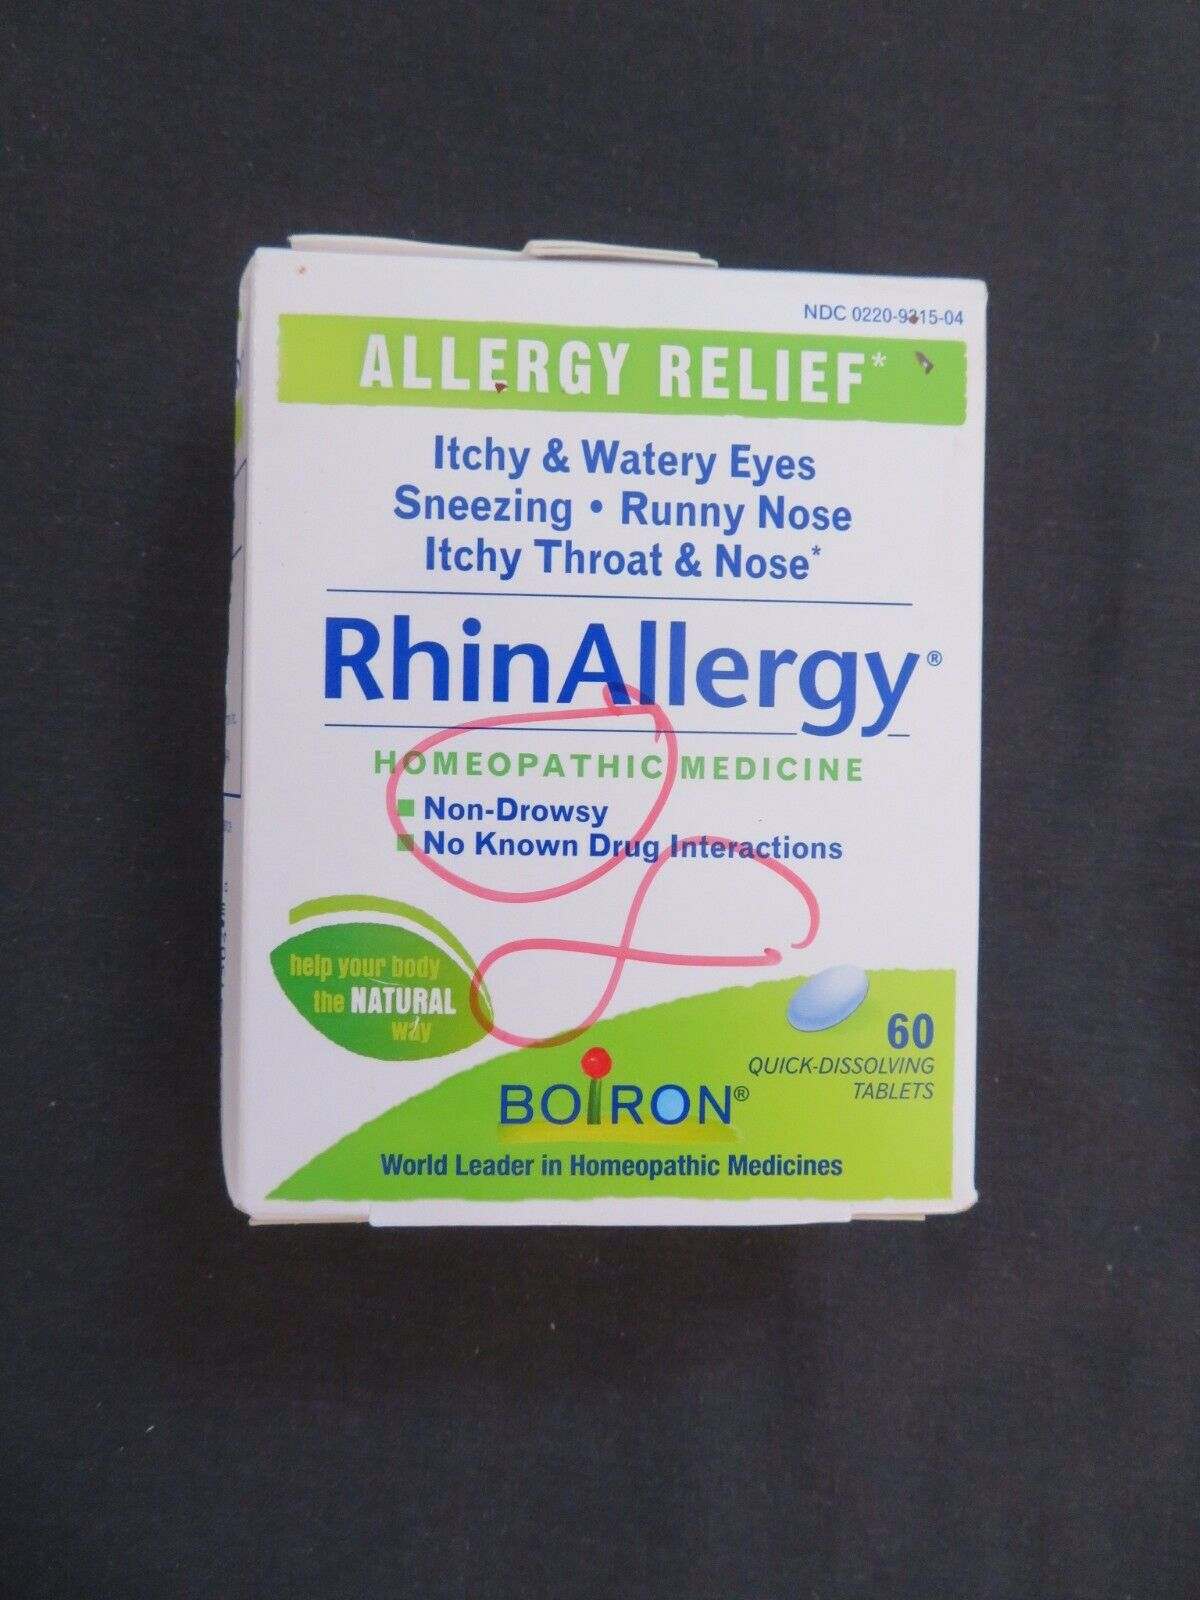 Boiron RhinAllergy 60 Tablets homeopathic allergy relief exp